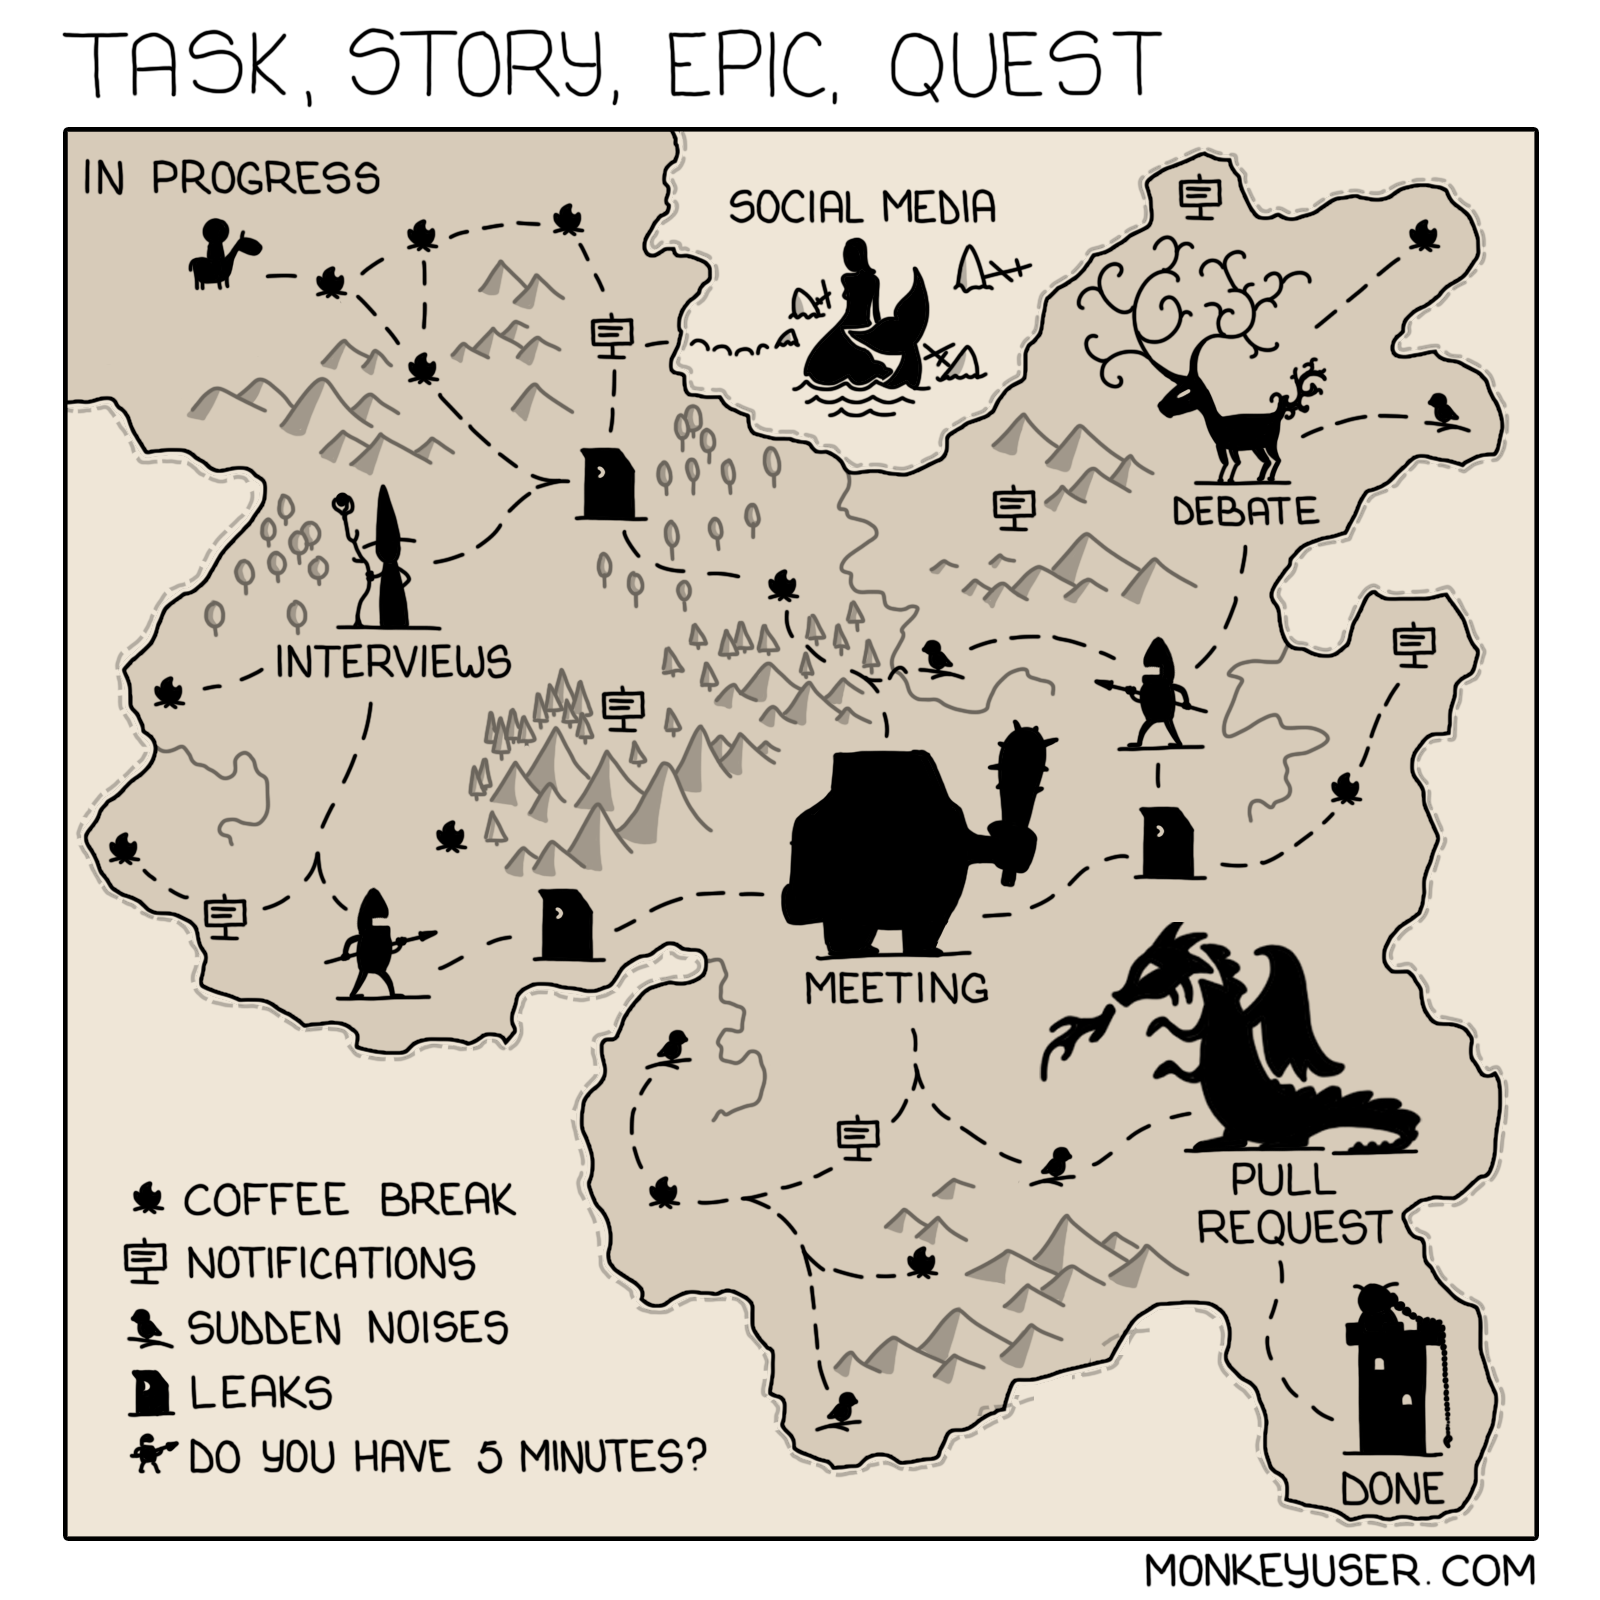 Task, Story, Epic, Quest